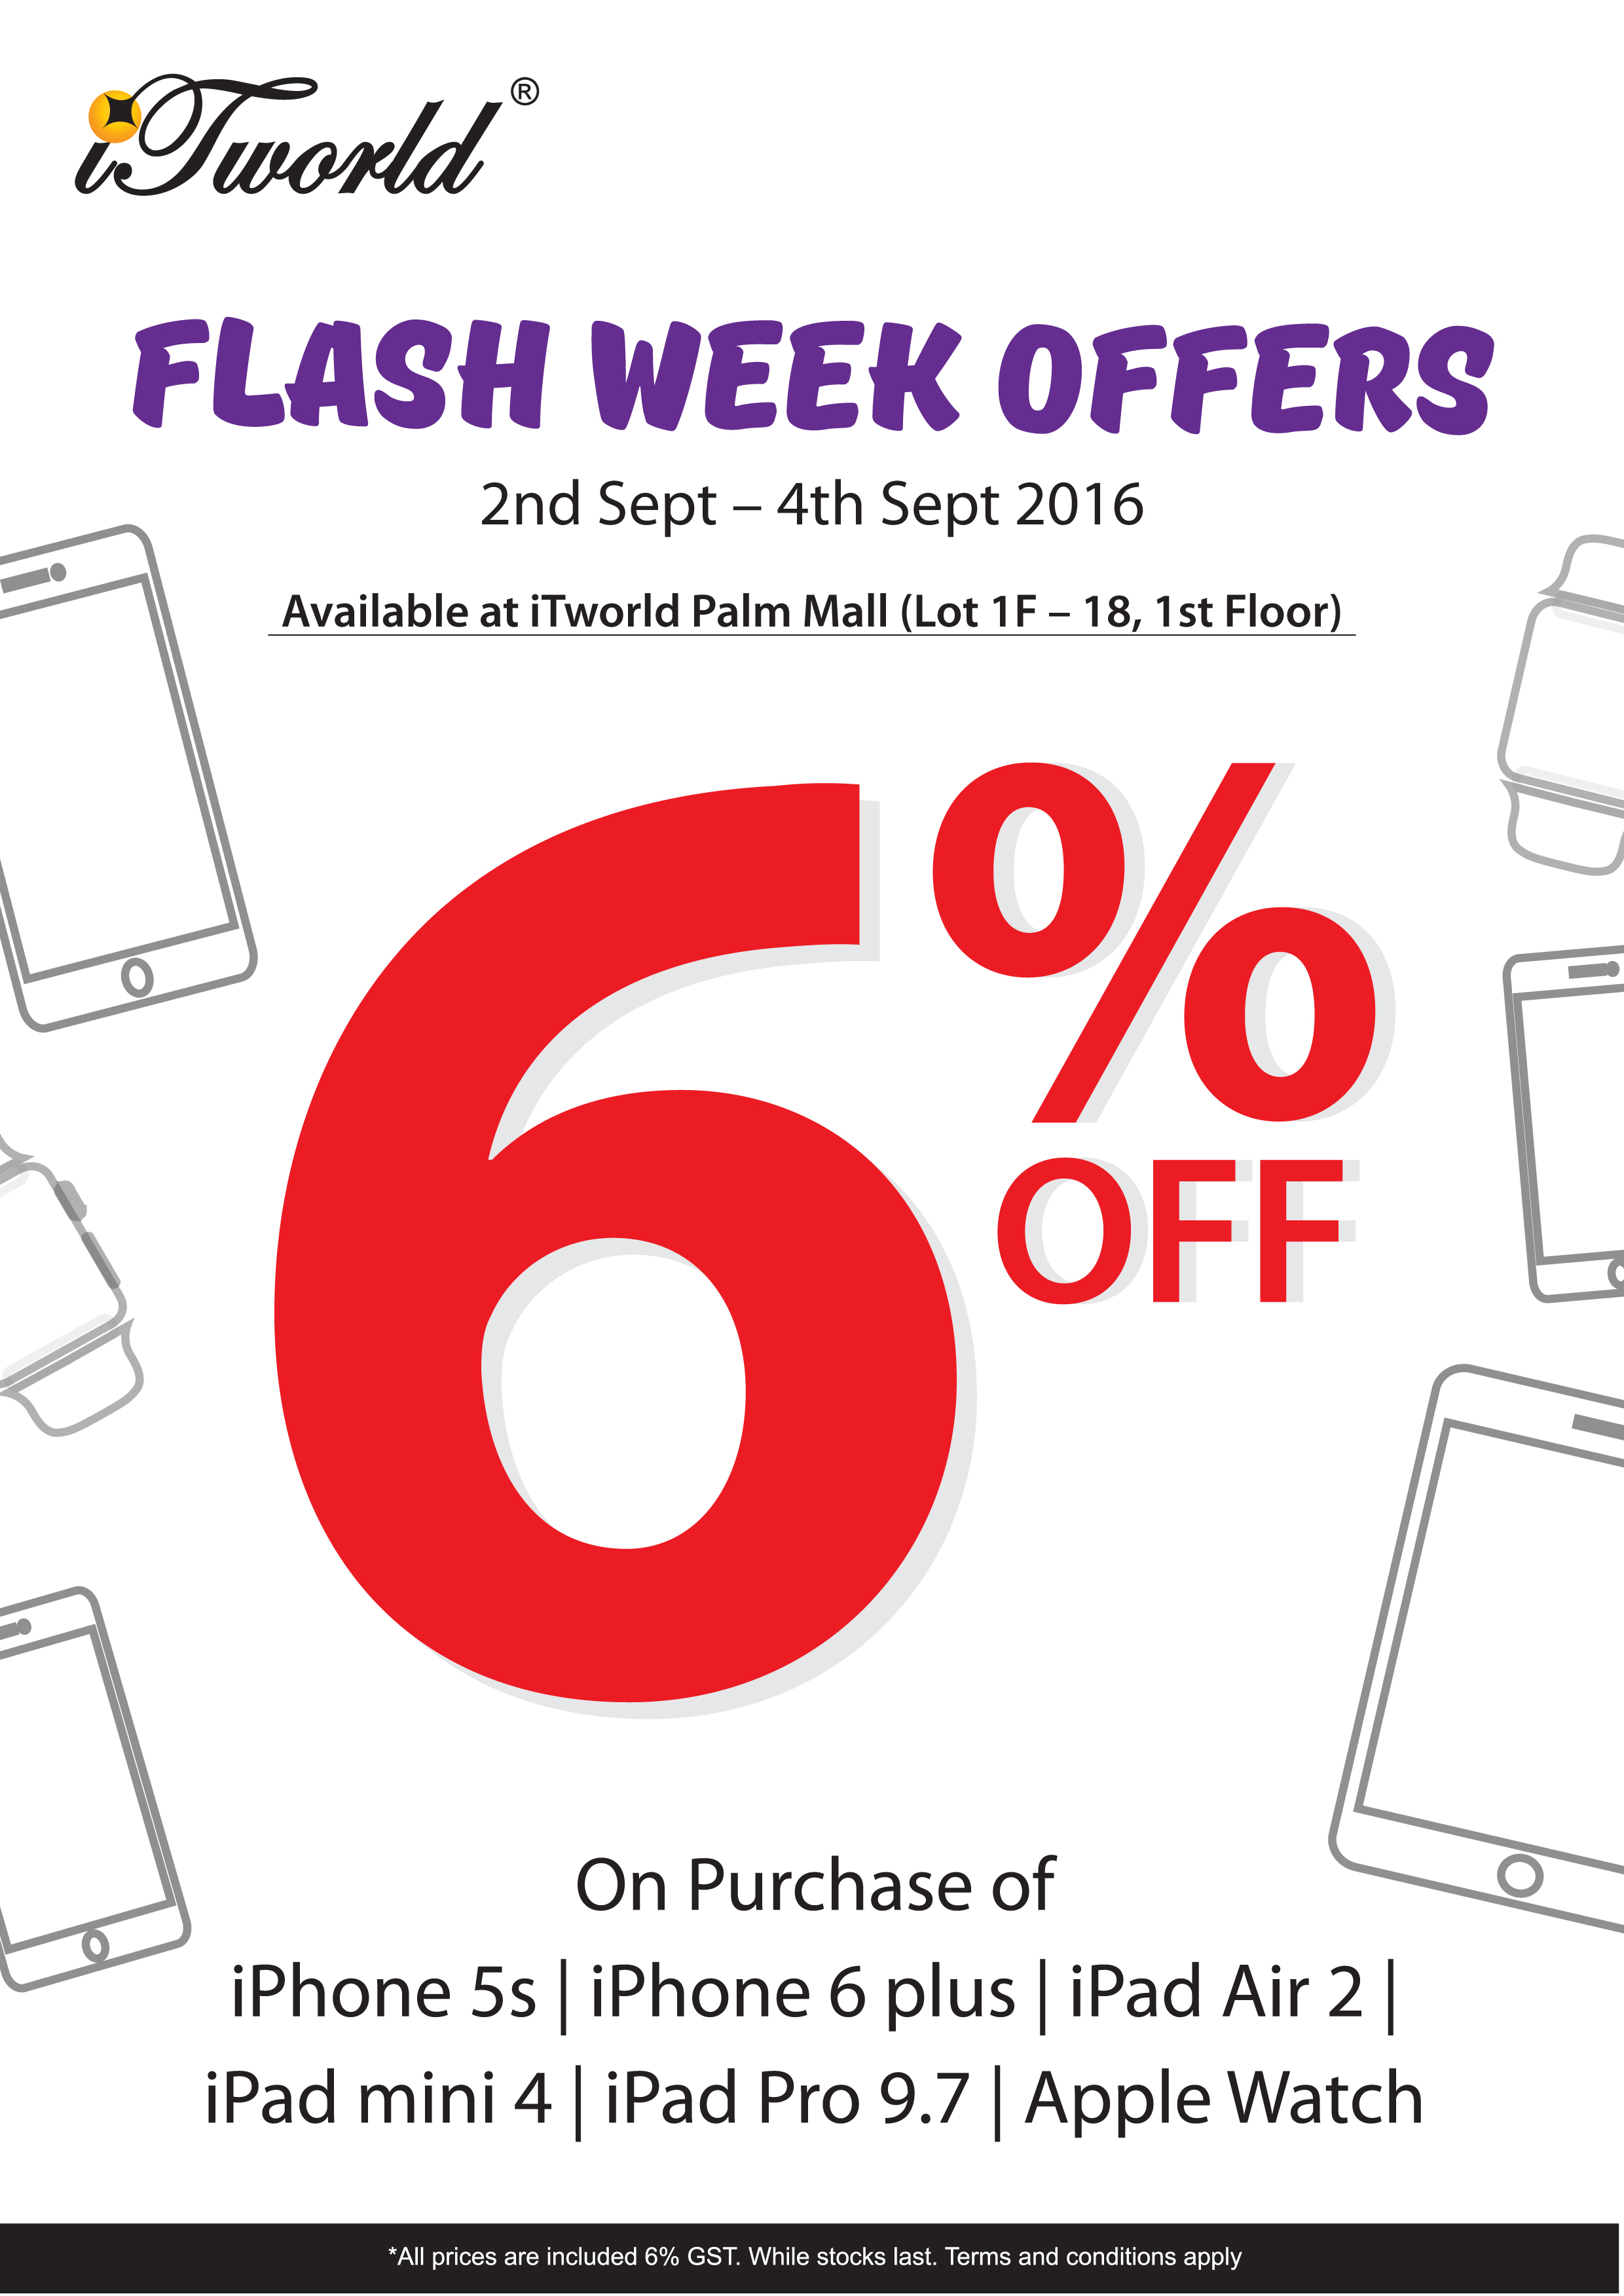 Flash Week Offers